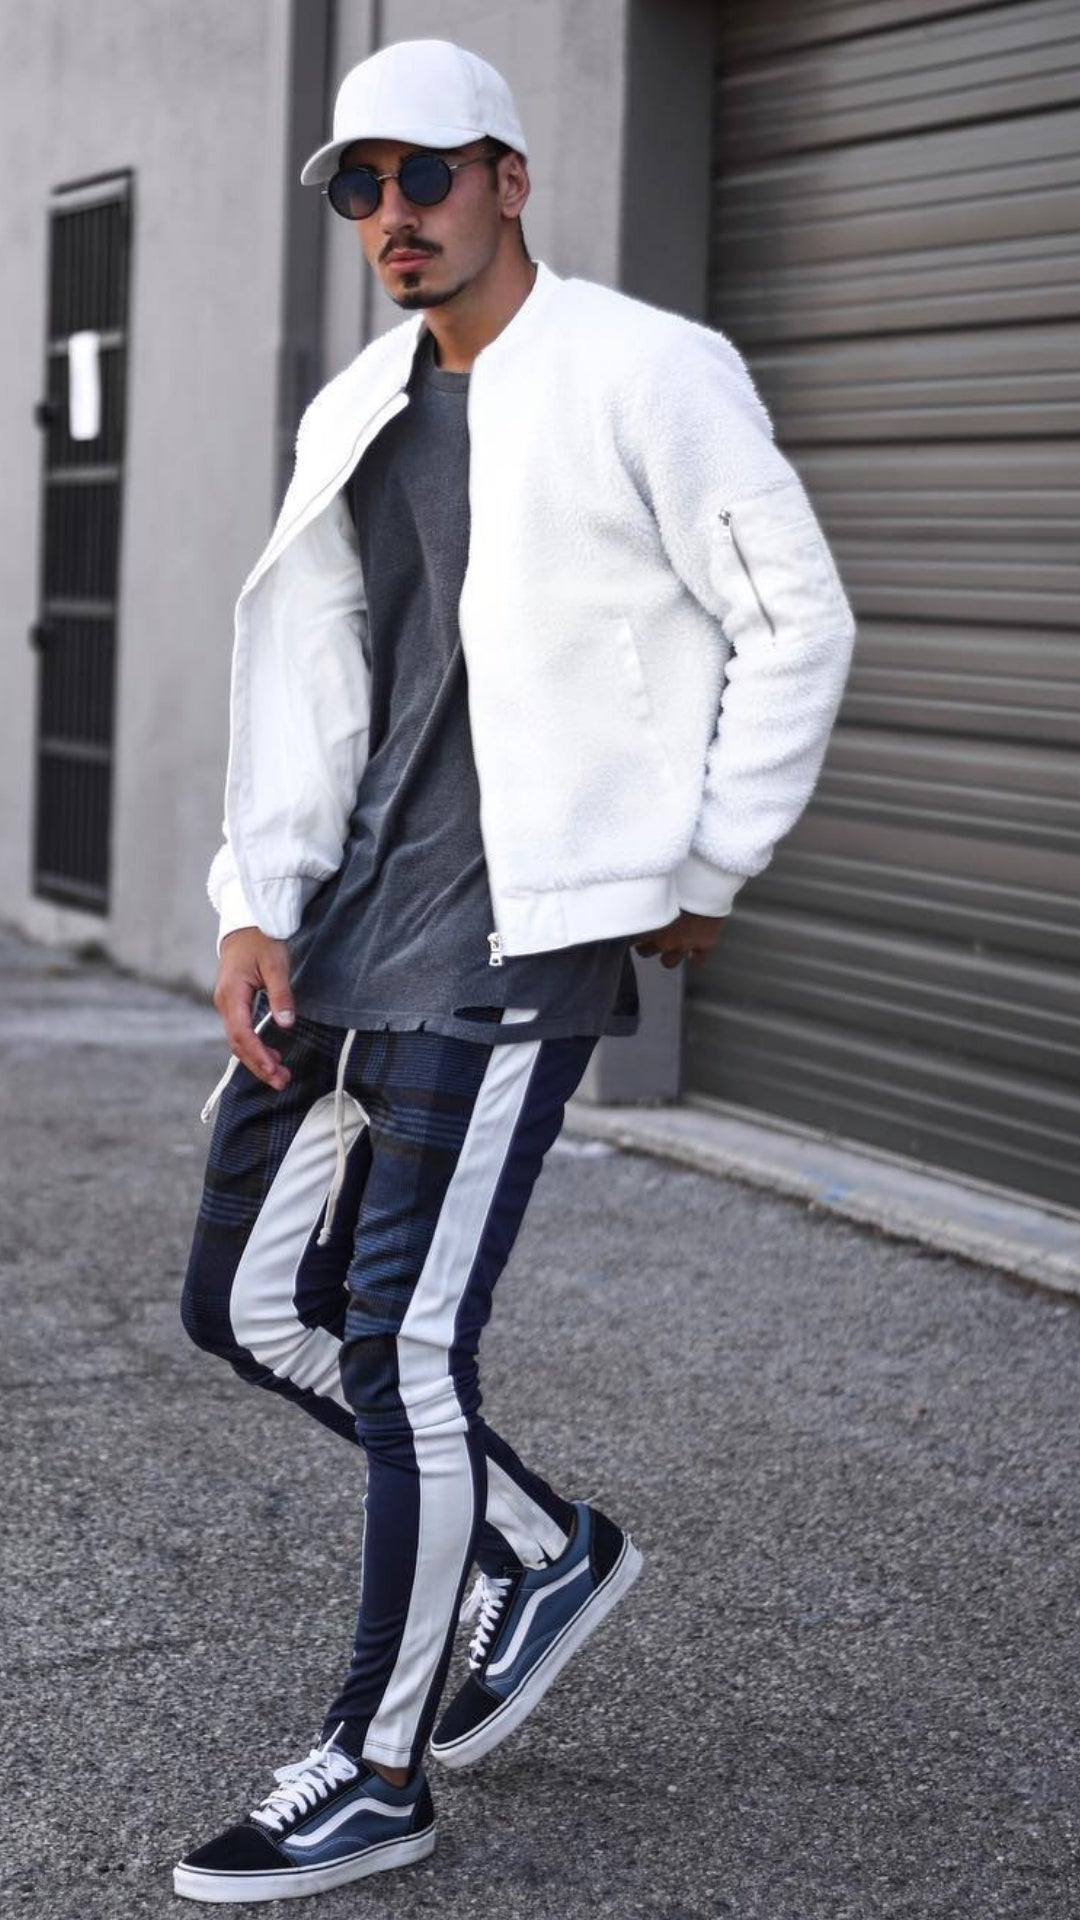 5 Joggers Outfits For Men #joggers #mens #fashion #street #style #athleisure